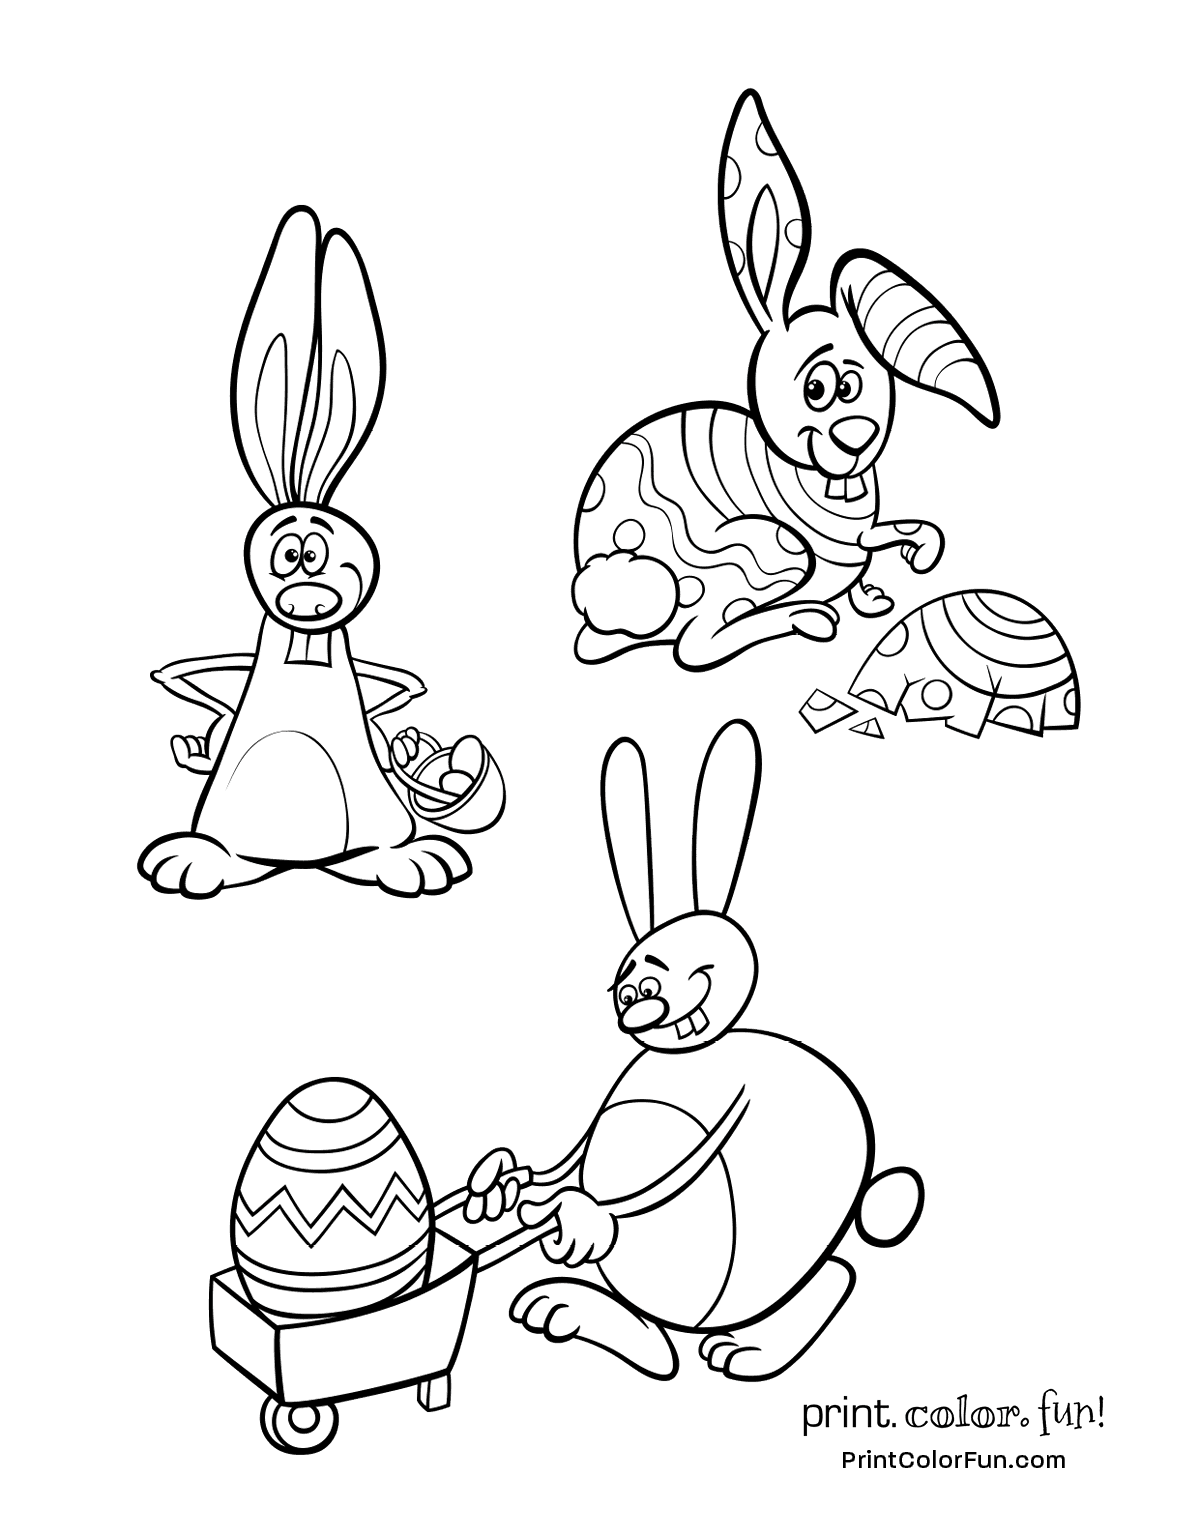 3 silly Easter bunnies to color